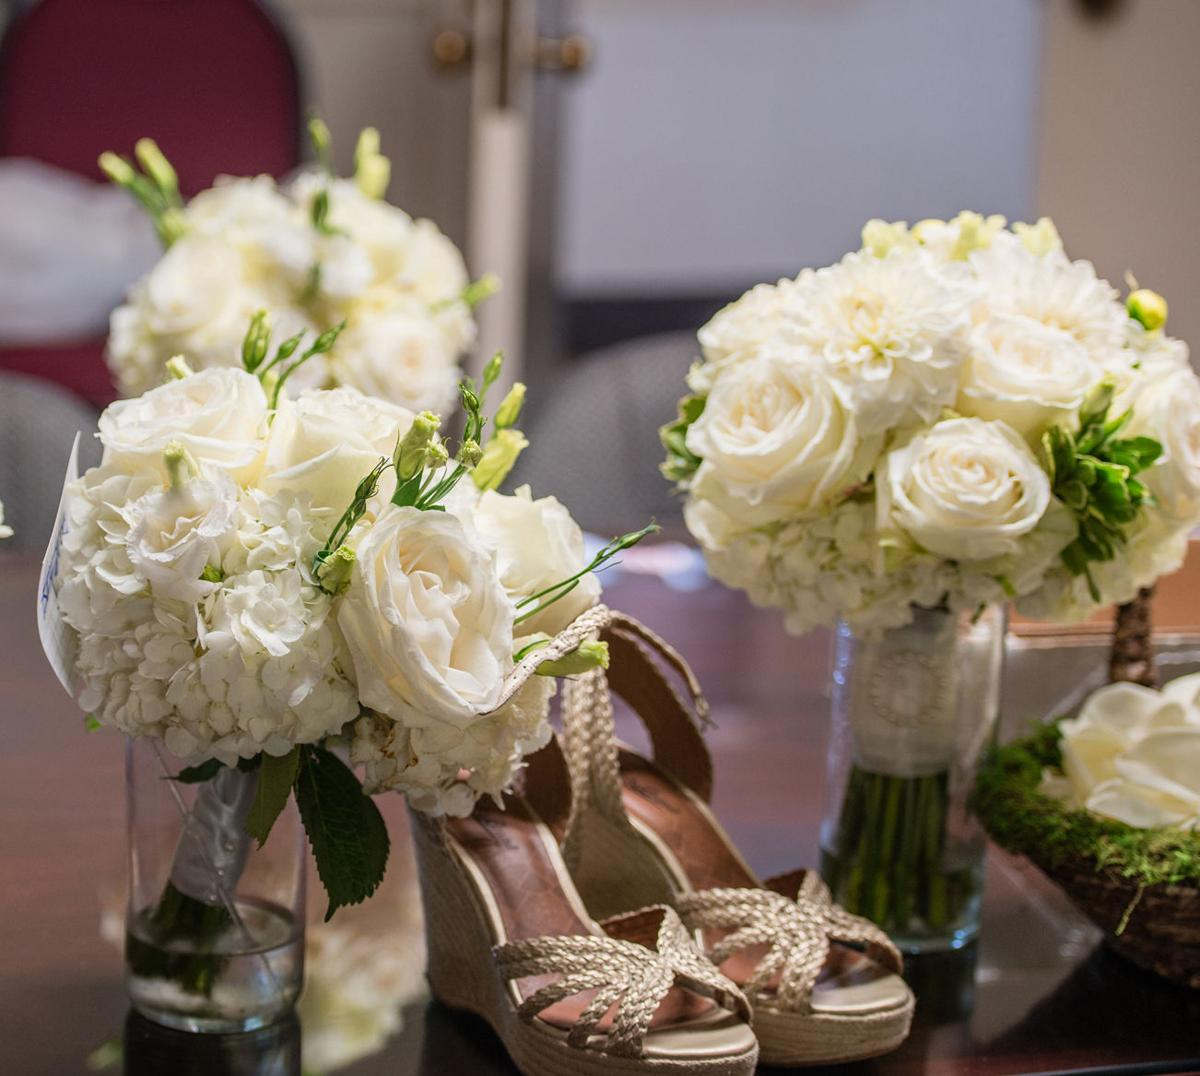 How To Preserve Wedding Bouquets And Arrangements | Hitched ...